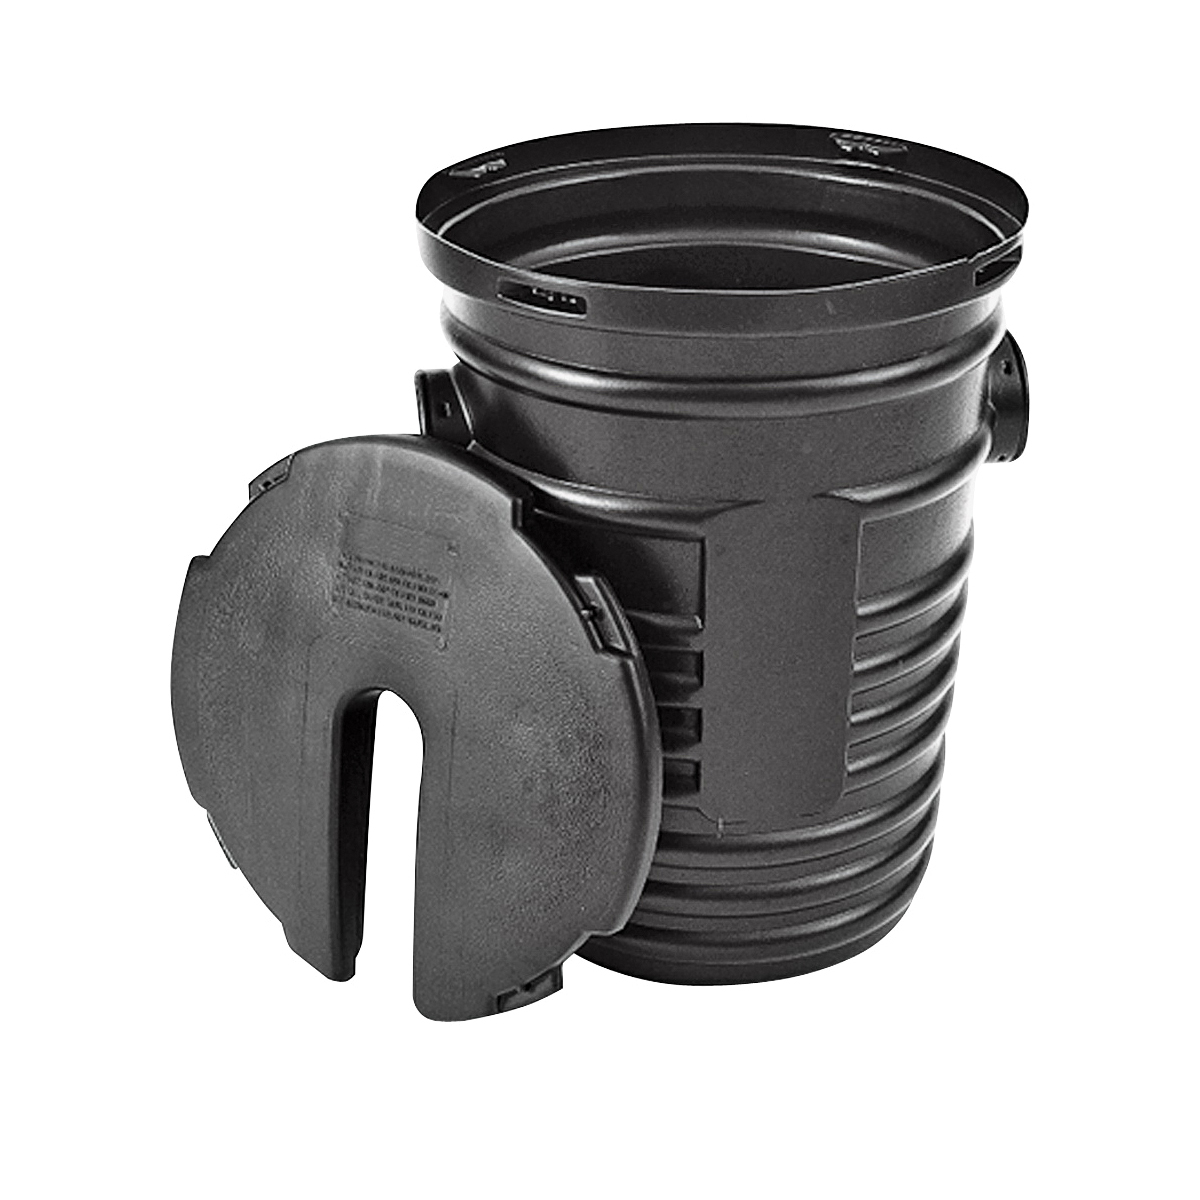 Picture of HANCOR 1524ADH Sump Pump System, 18 in Dia, 24 in L, 14 gal Capacity, Polyethylene